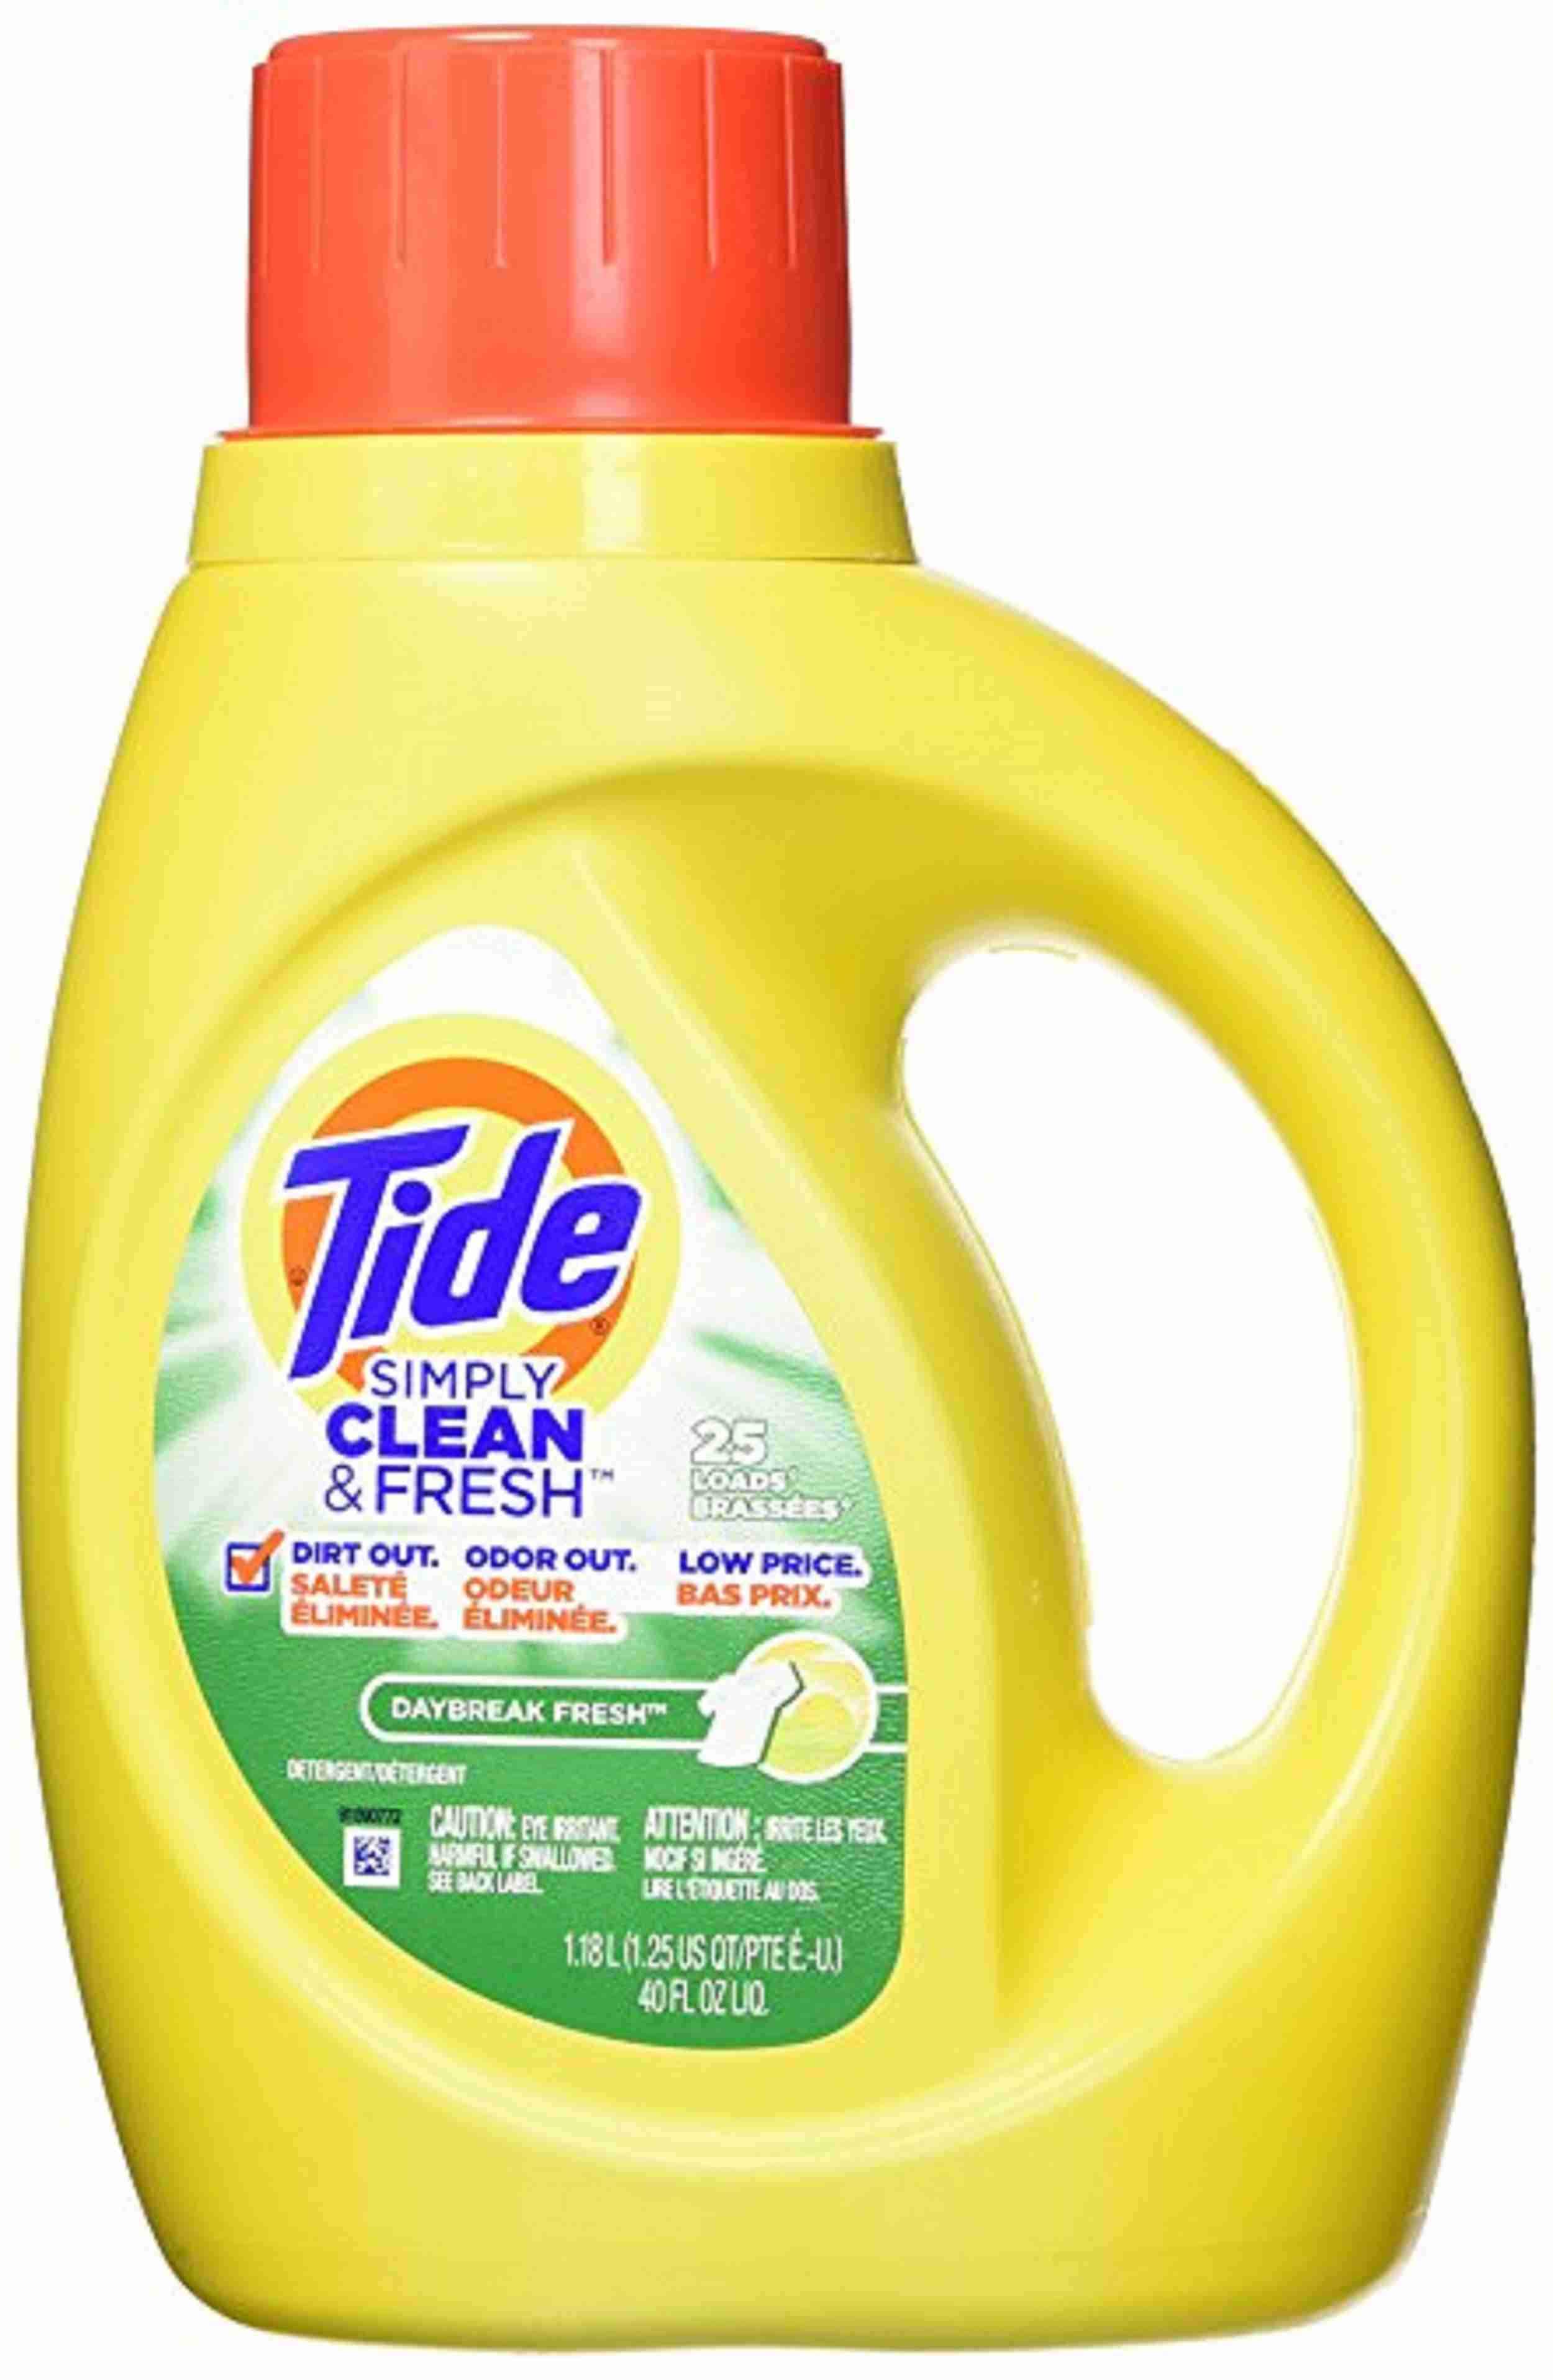 Tide Simply Clean and Fresh